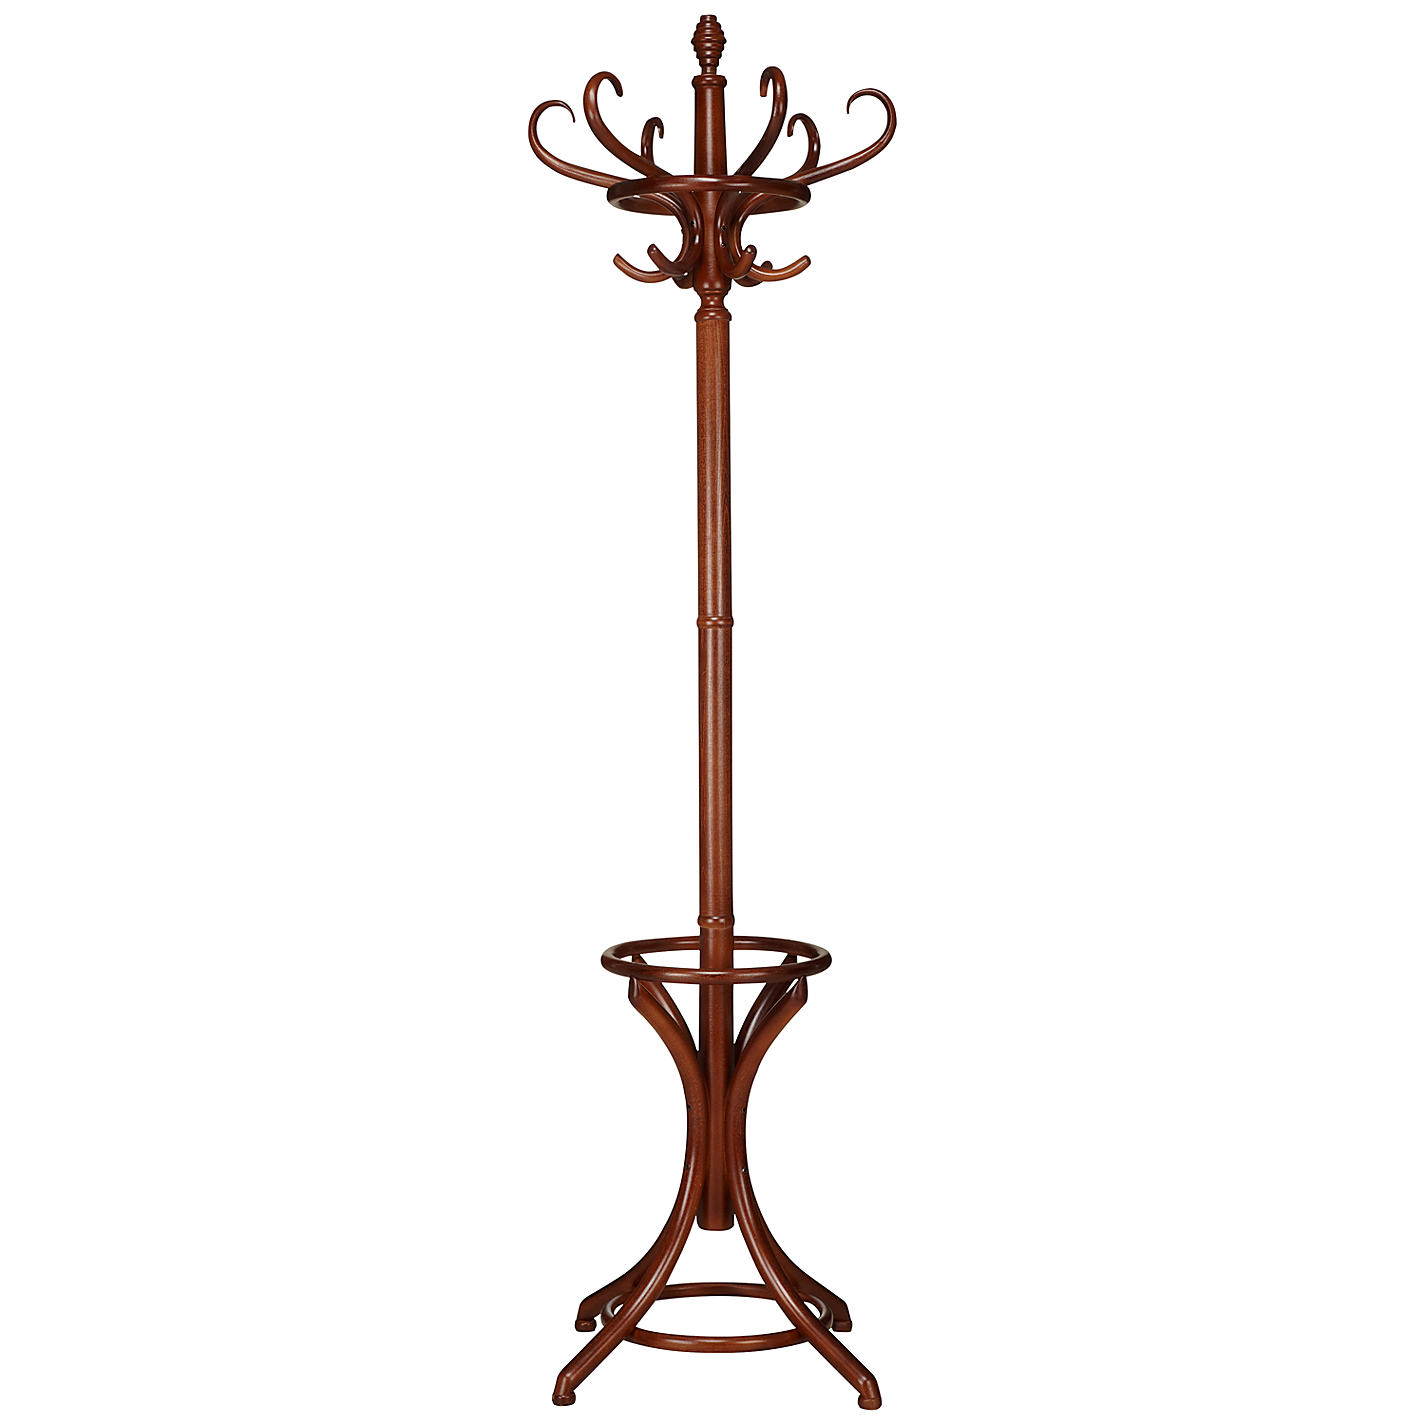 Walnut coat stand uk home decorating ideas interior design for Interior wordreference